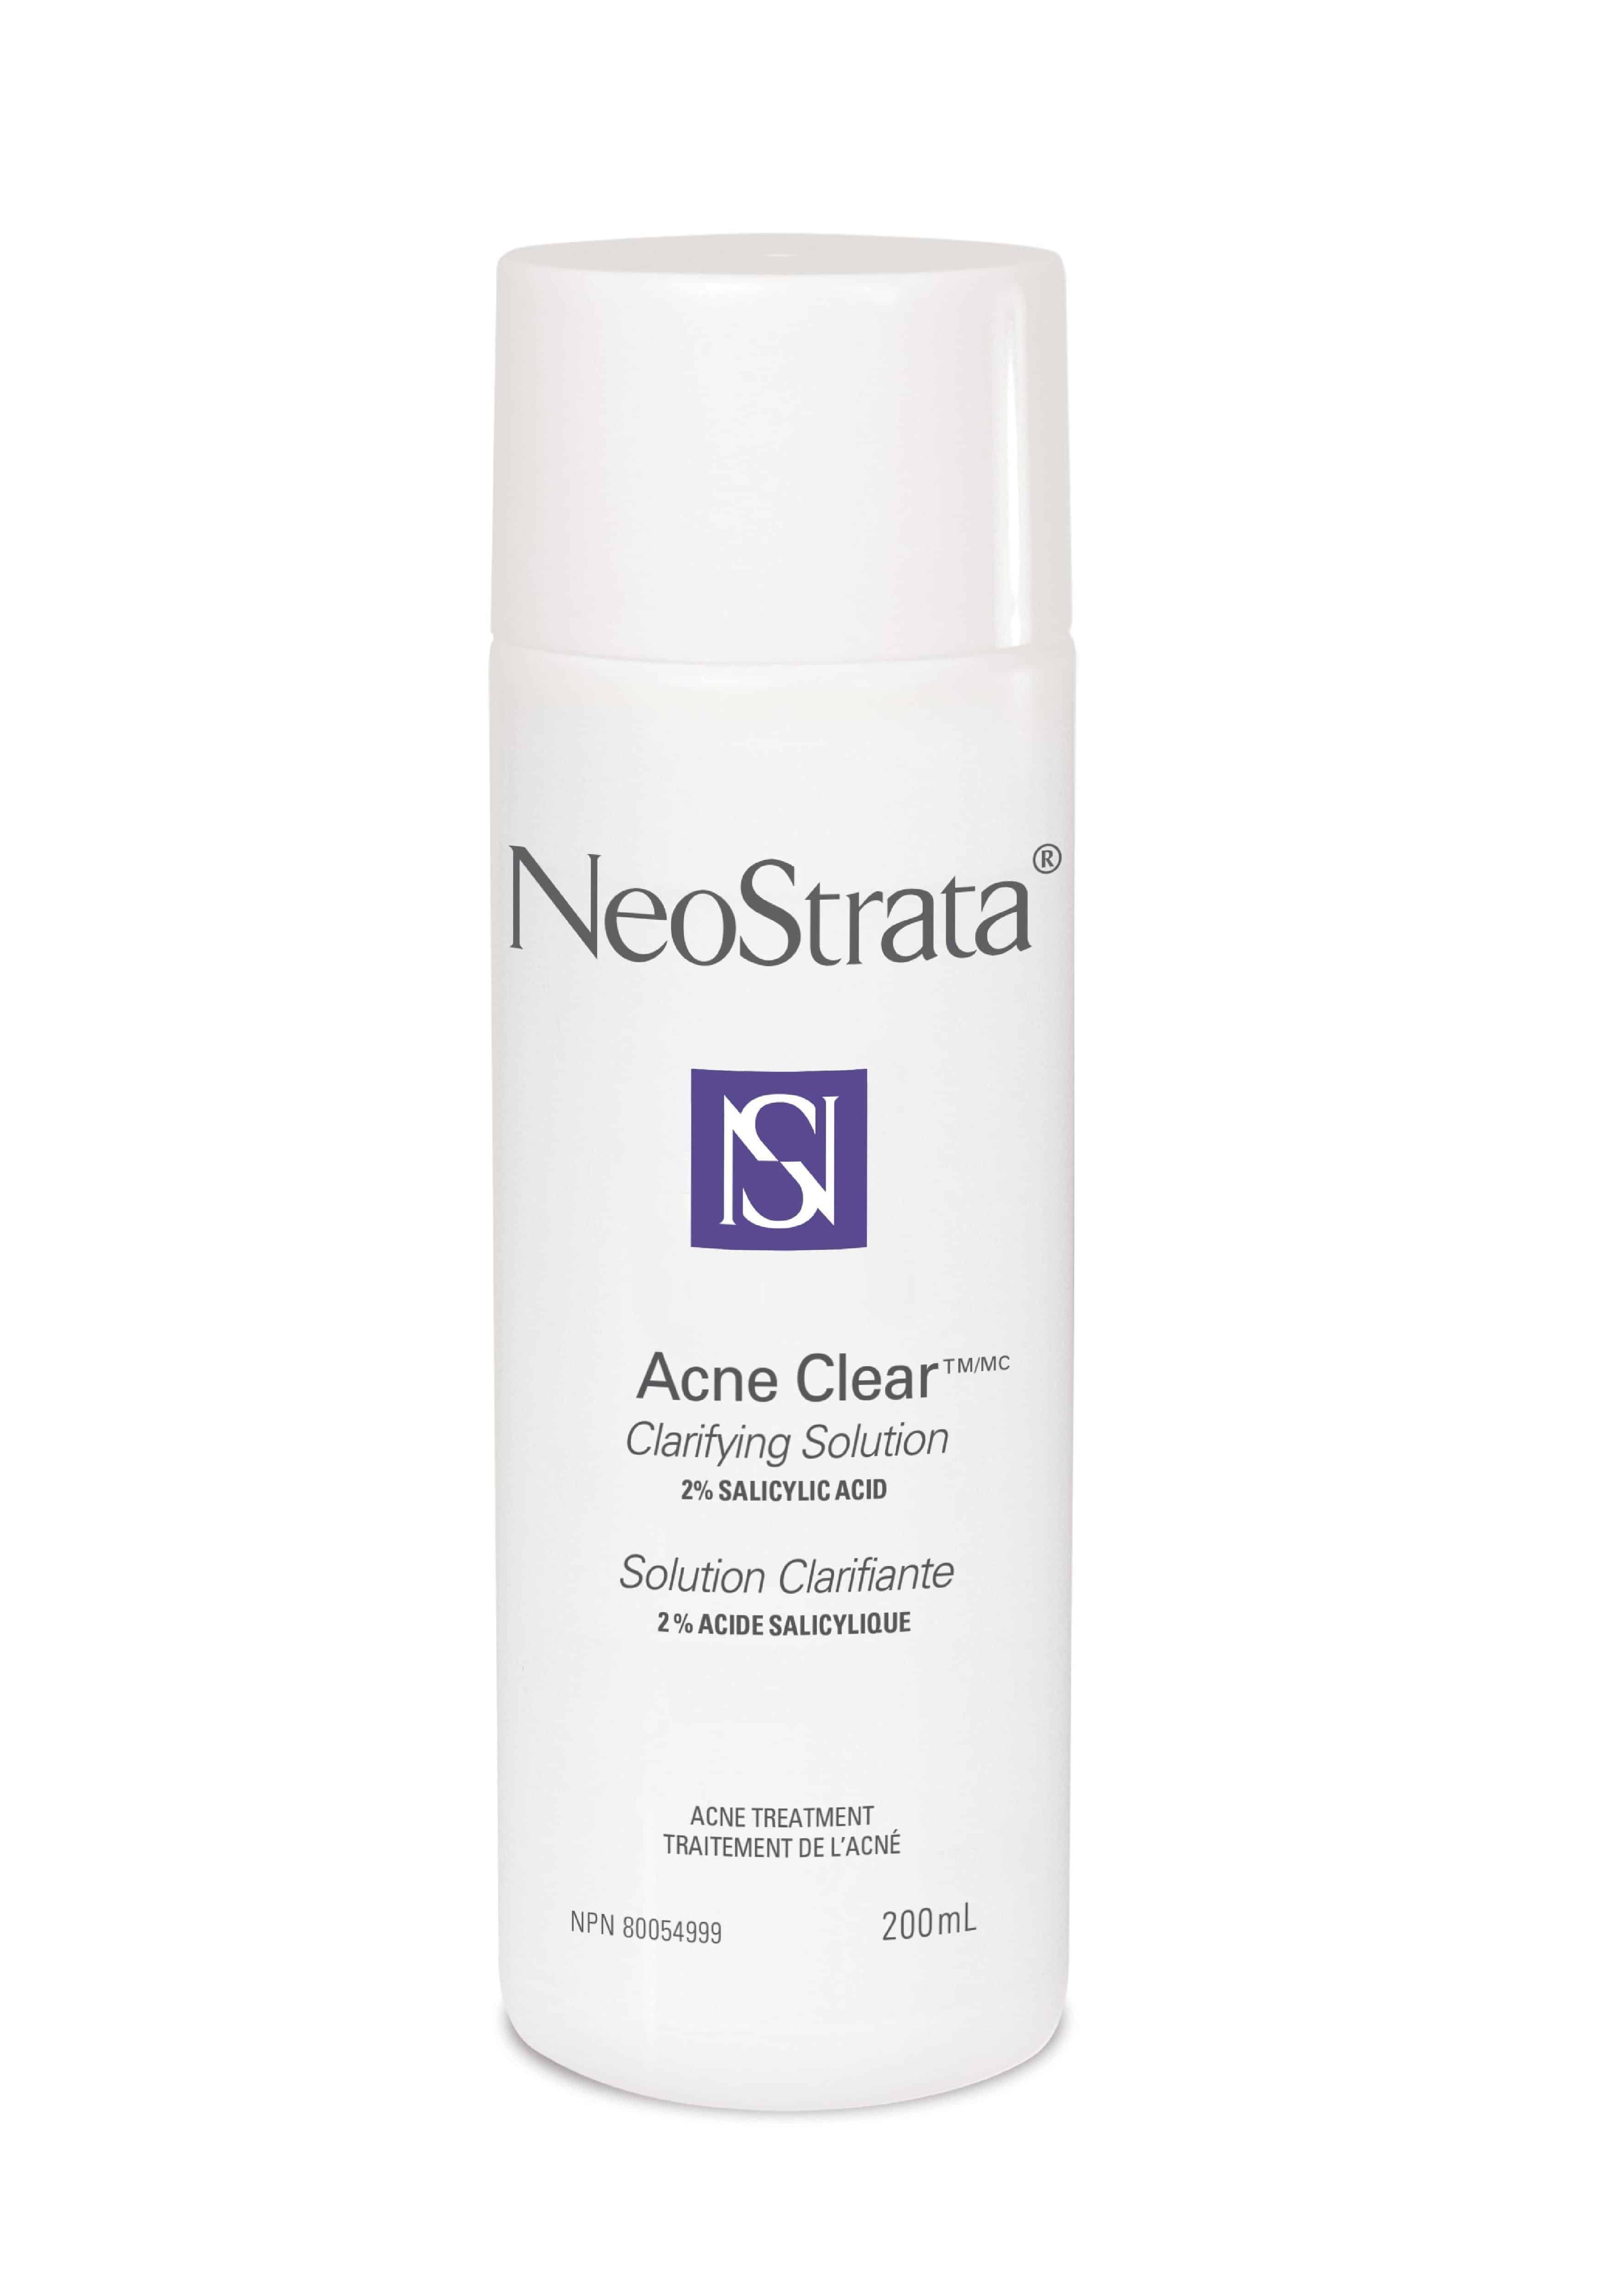 NeoStrata%20Acne%20Clear%20Clarifying%20Solution.jpg